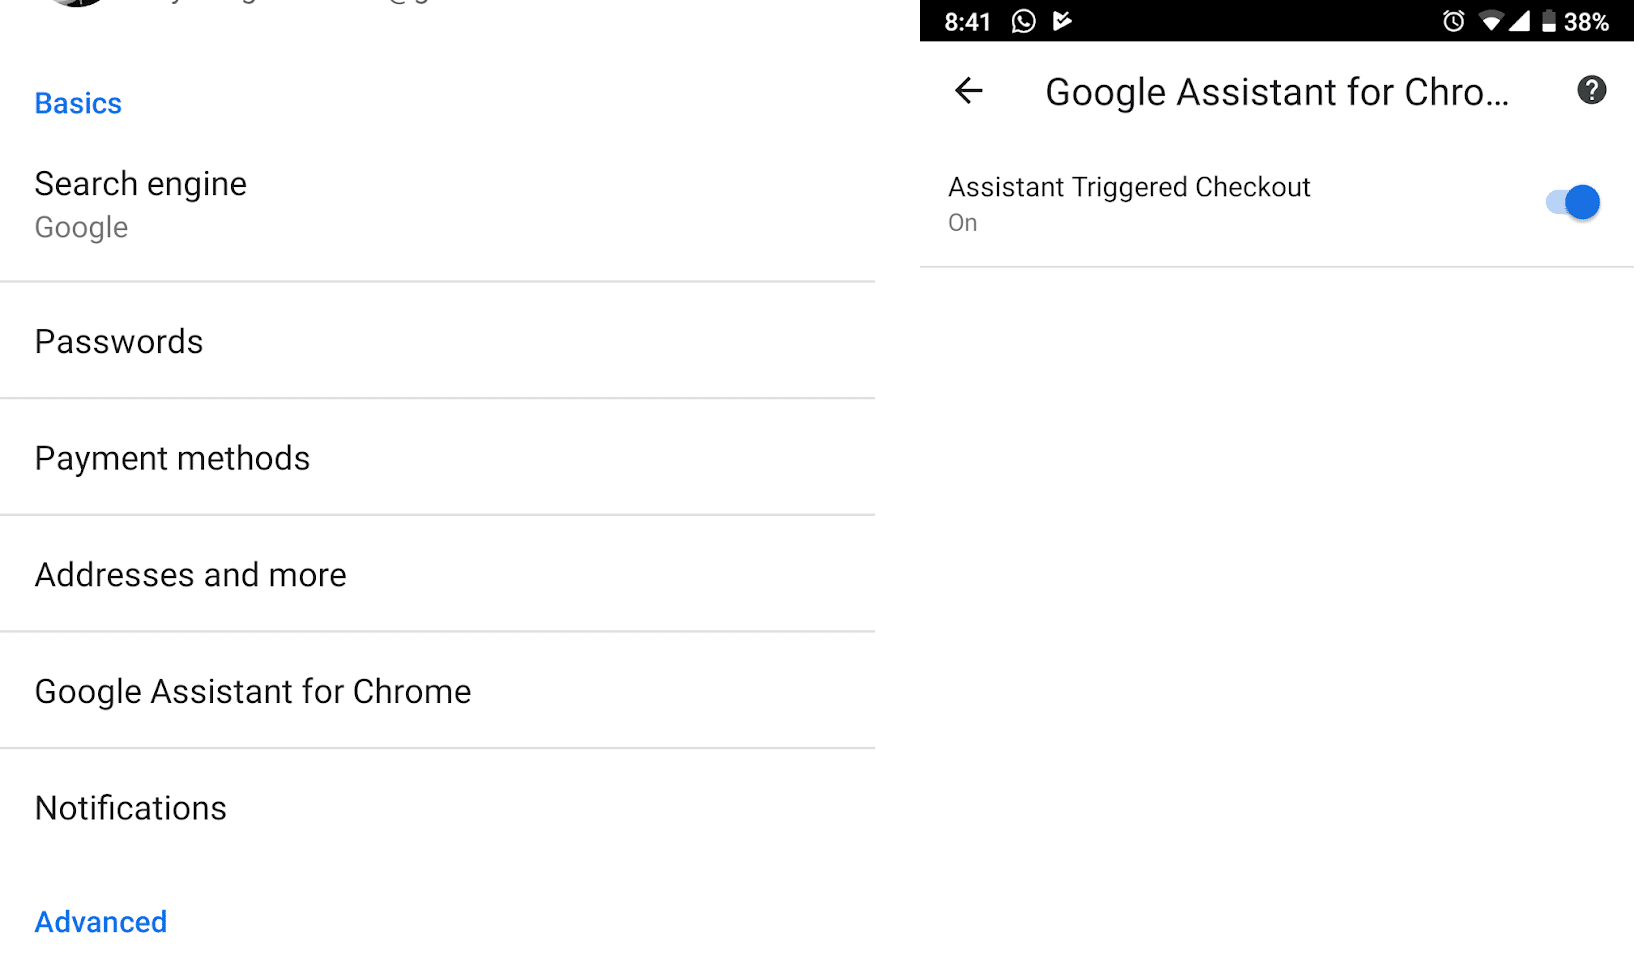 google-assistant-for-chrome